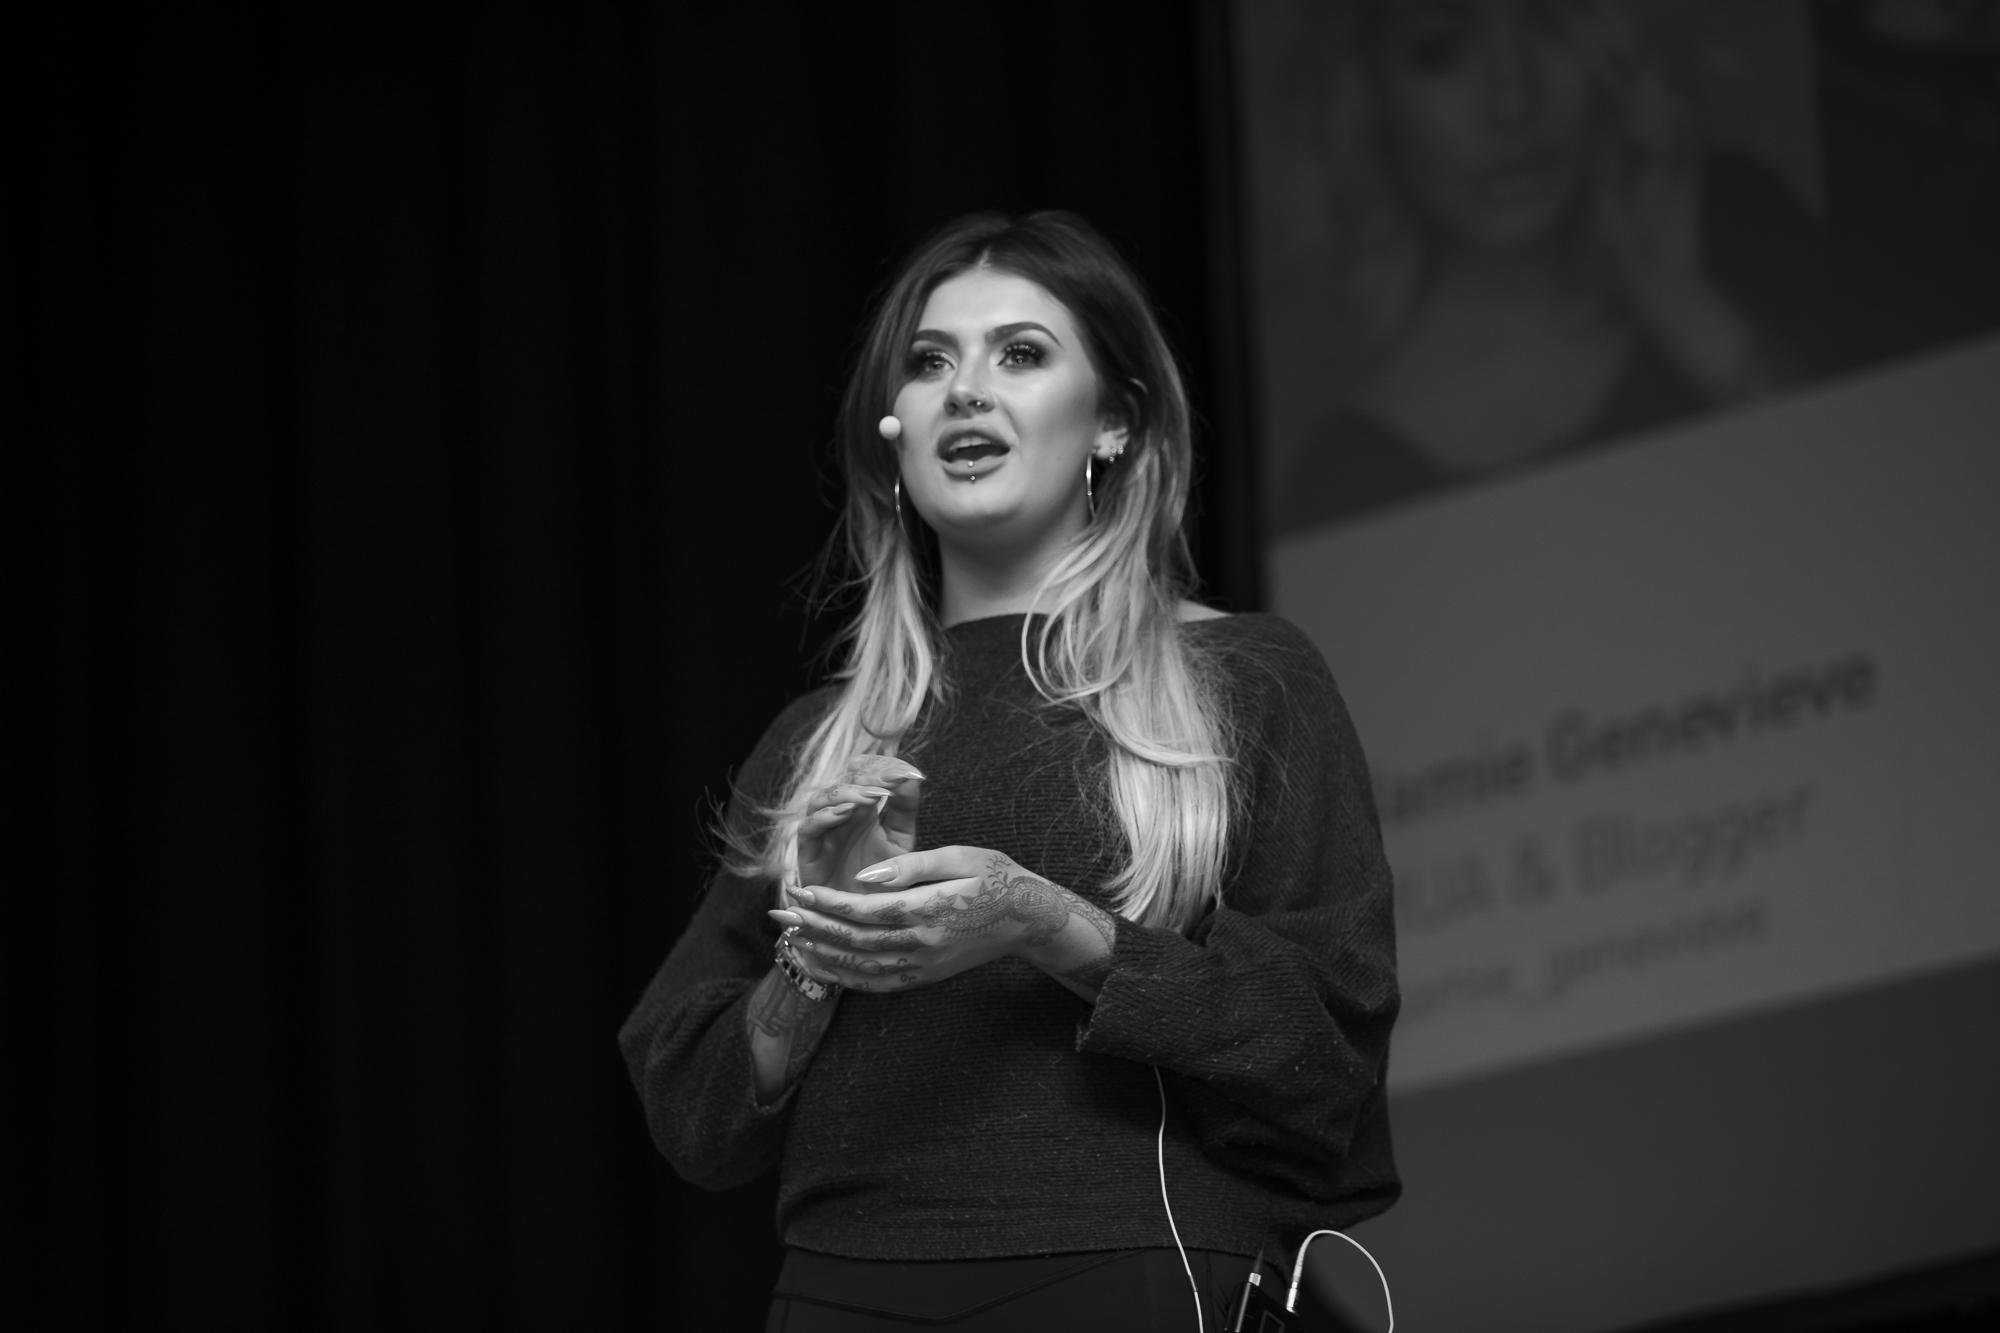 Make up artist and YouTuber, Jamie Genevieve, on stage doing a presentation